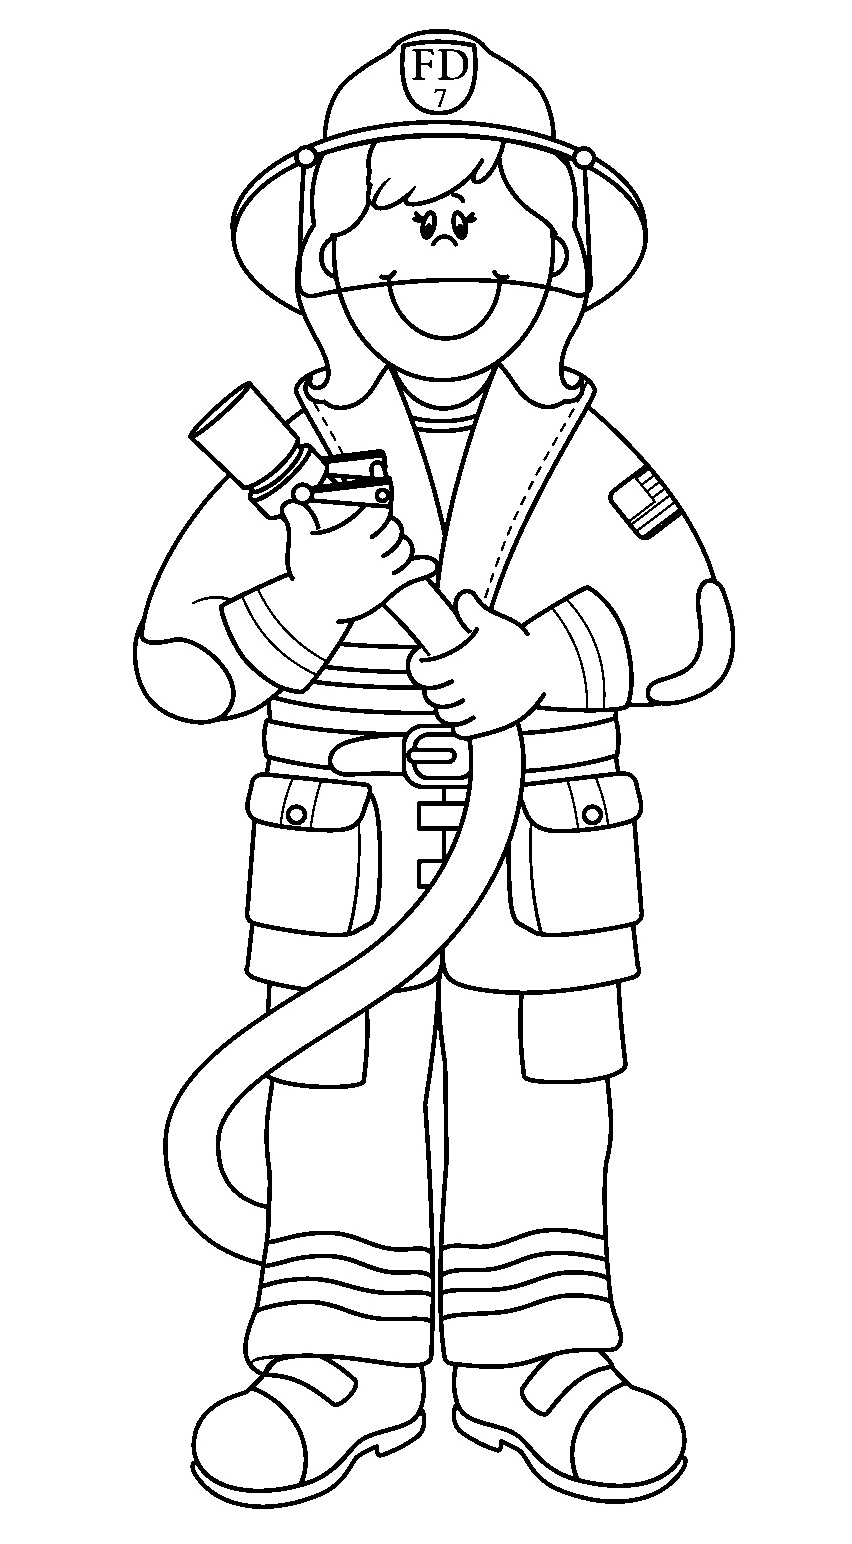 852x1544 Value Firefighter Coloring Pages Printable Fireman